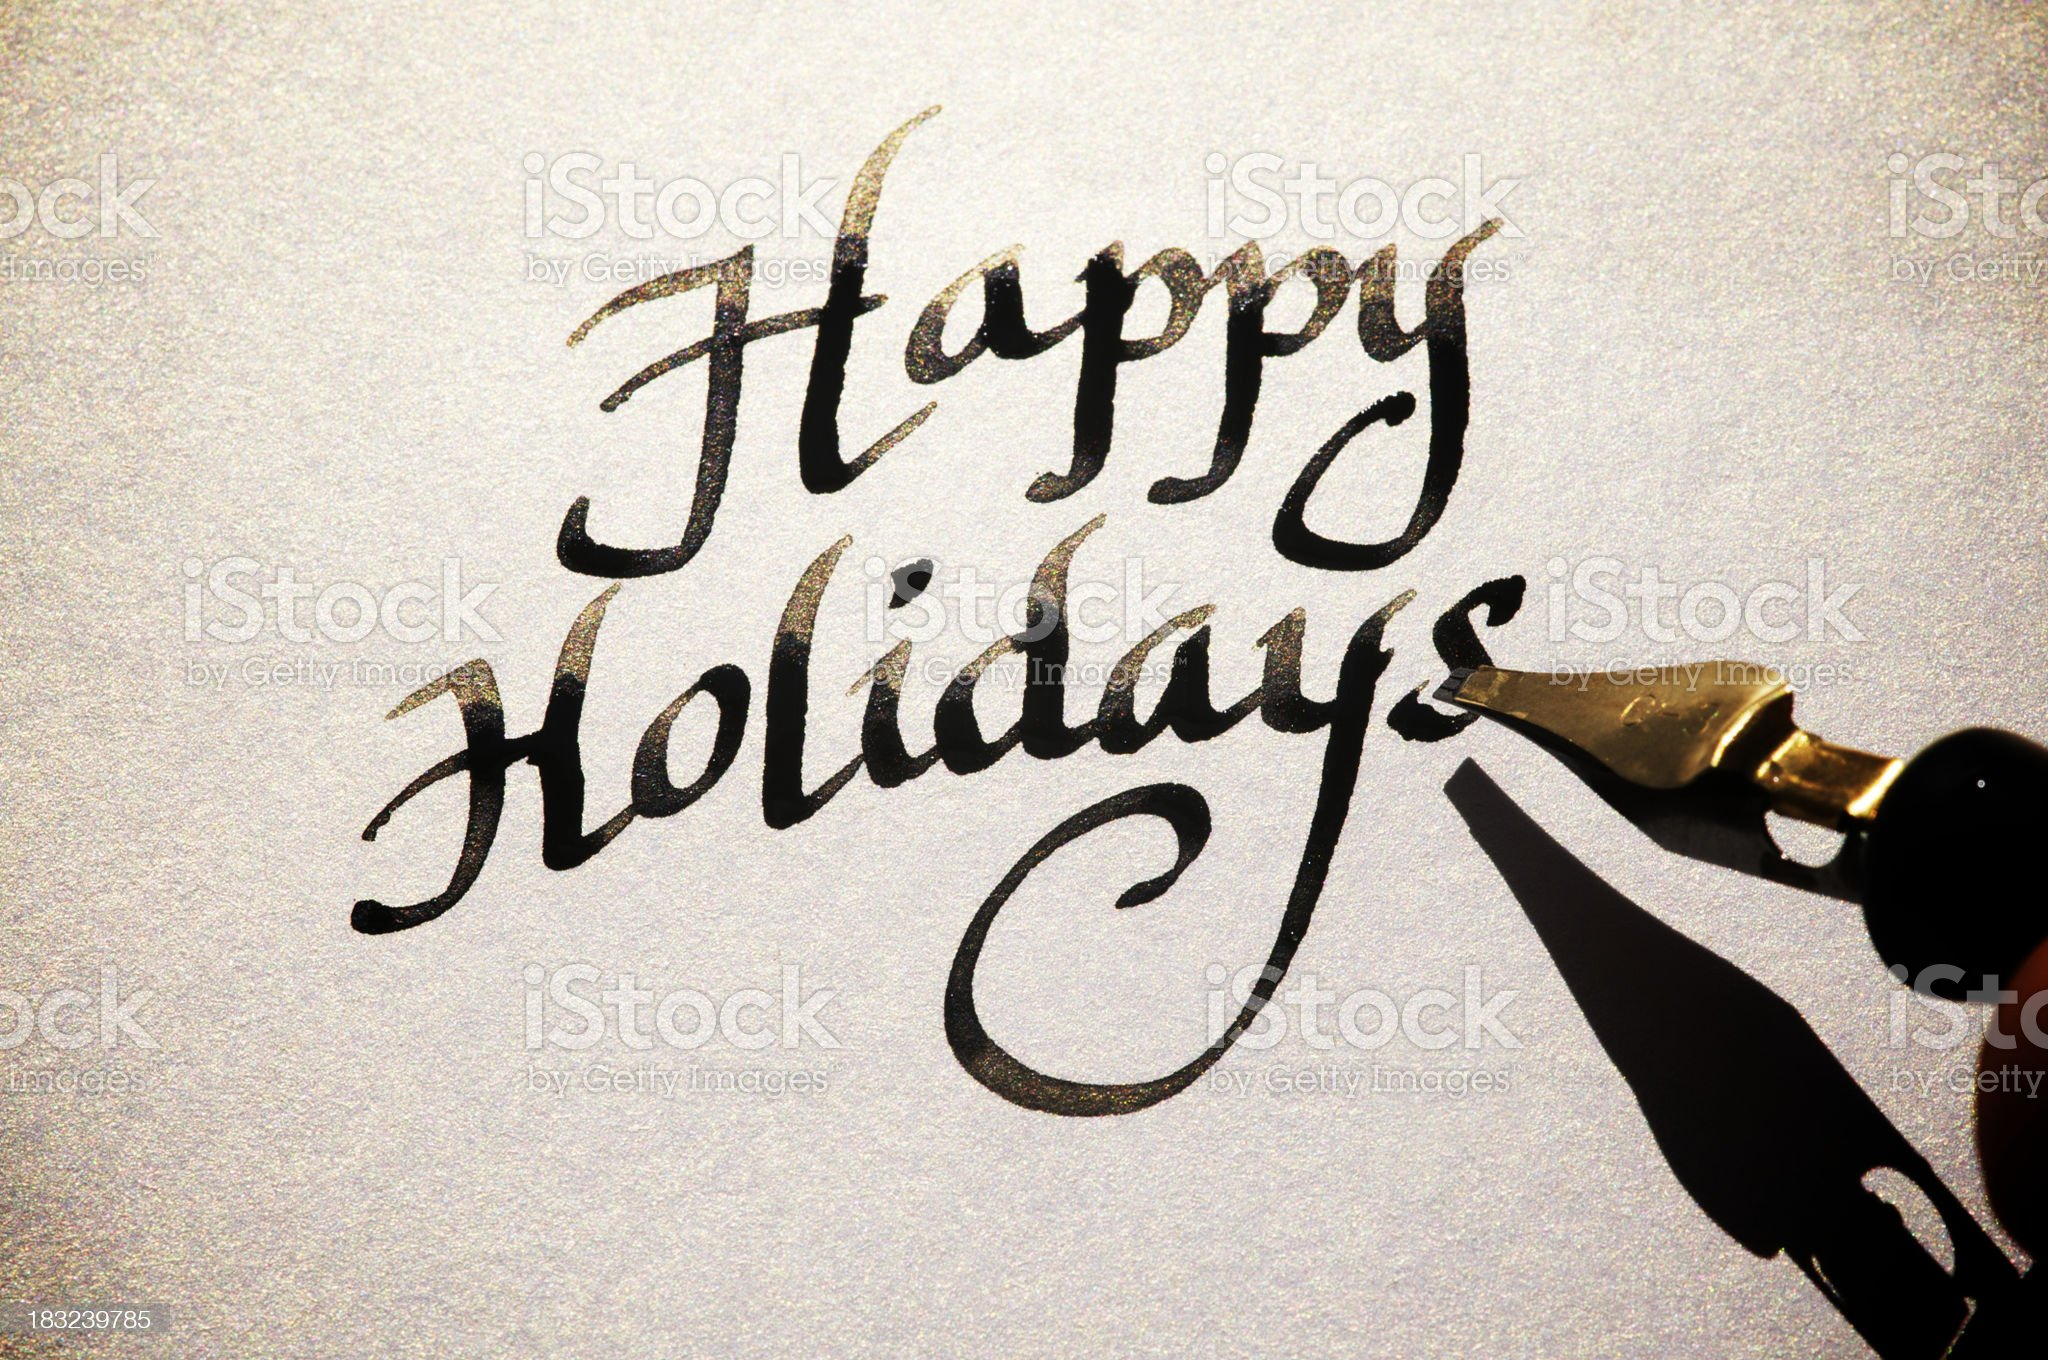 Happy Holidays Greeting Card Message in Old Fashioned Calligraphy royalty-free stock photo